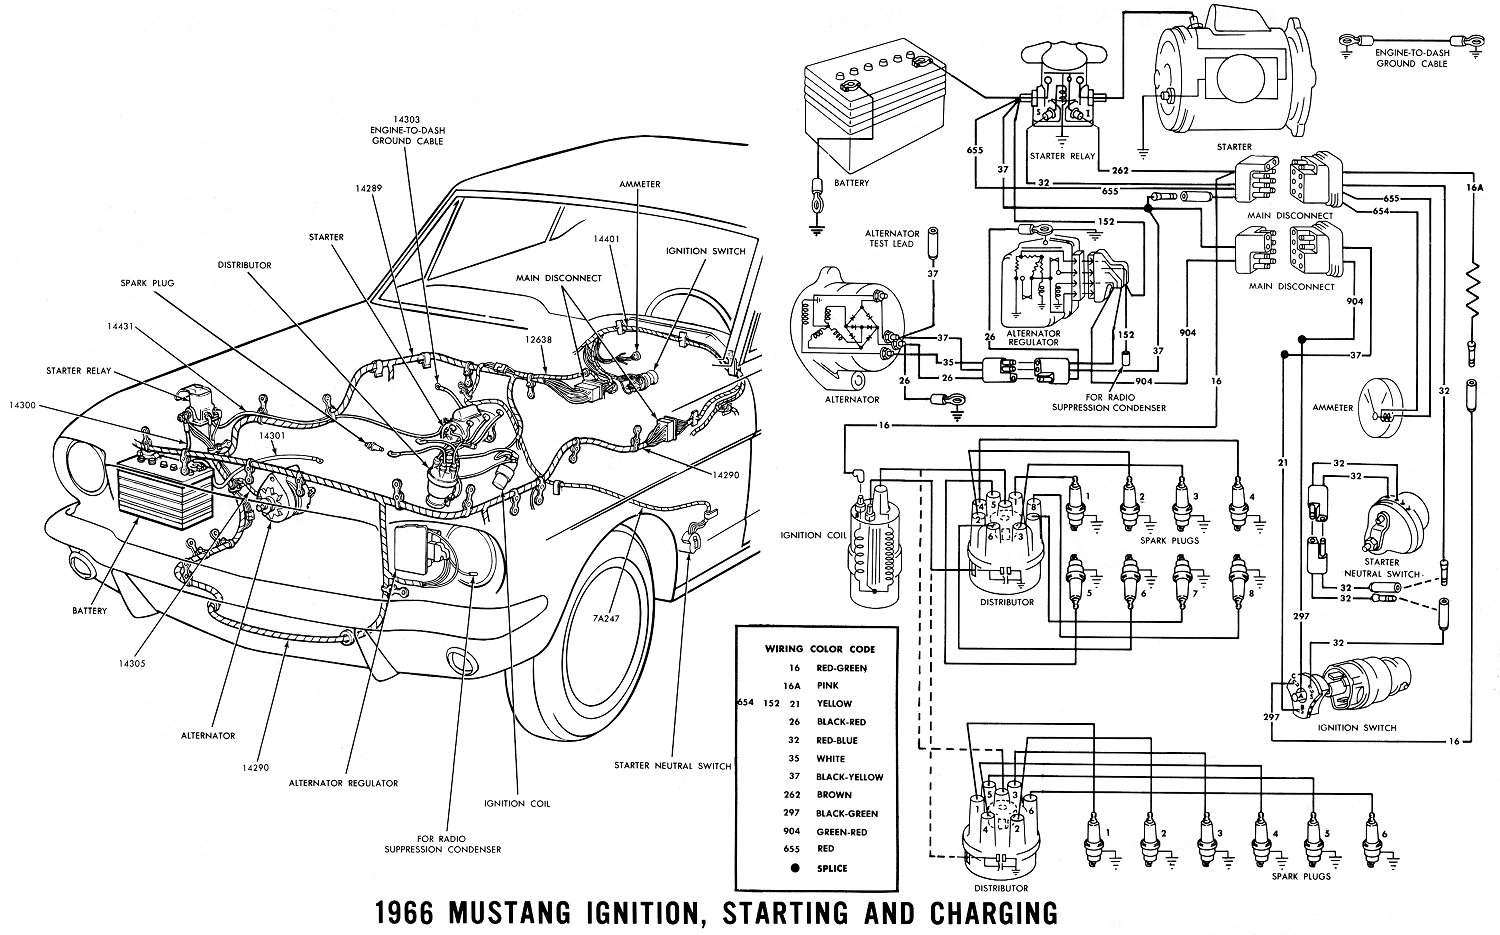 66ignit 1966 mustang wiring diagrams average joe restoration 1966 mustang fuse box diagram at bayanpartner.co